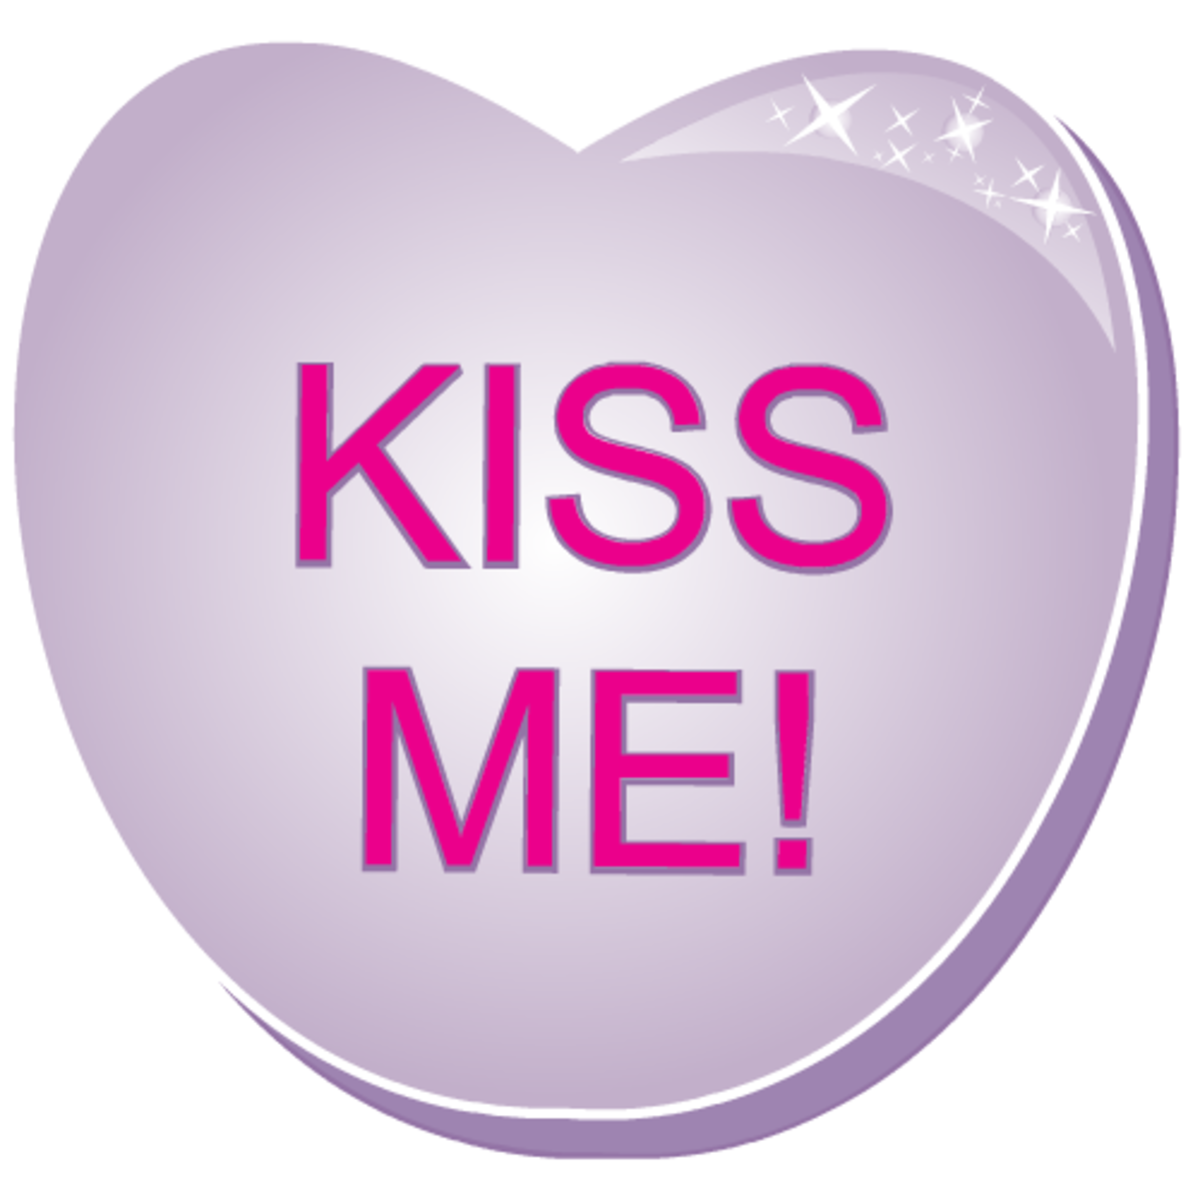 Free valentines clipart: Kiss Me! purple candy heart